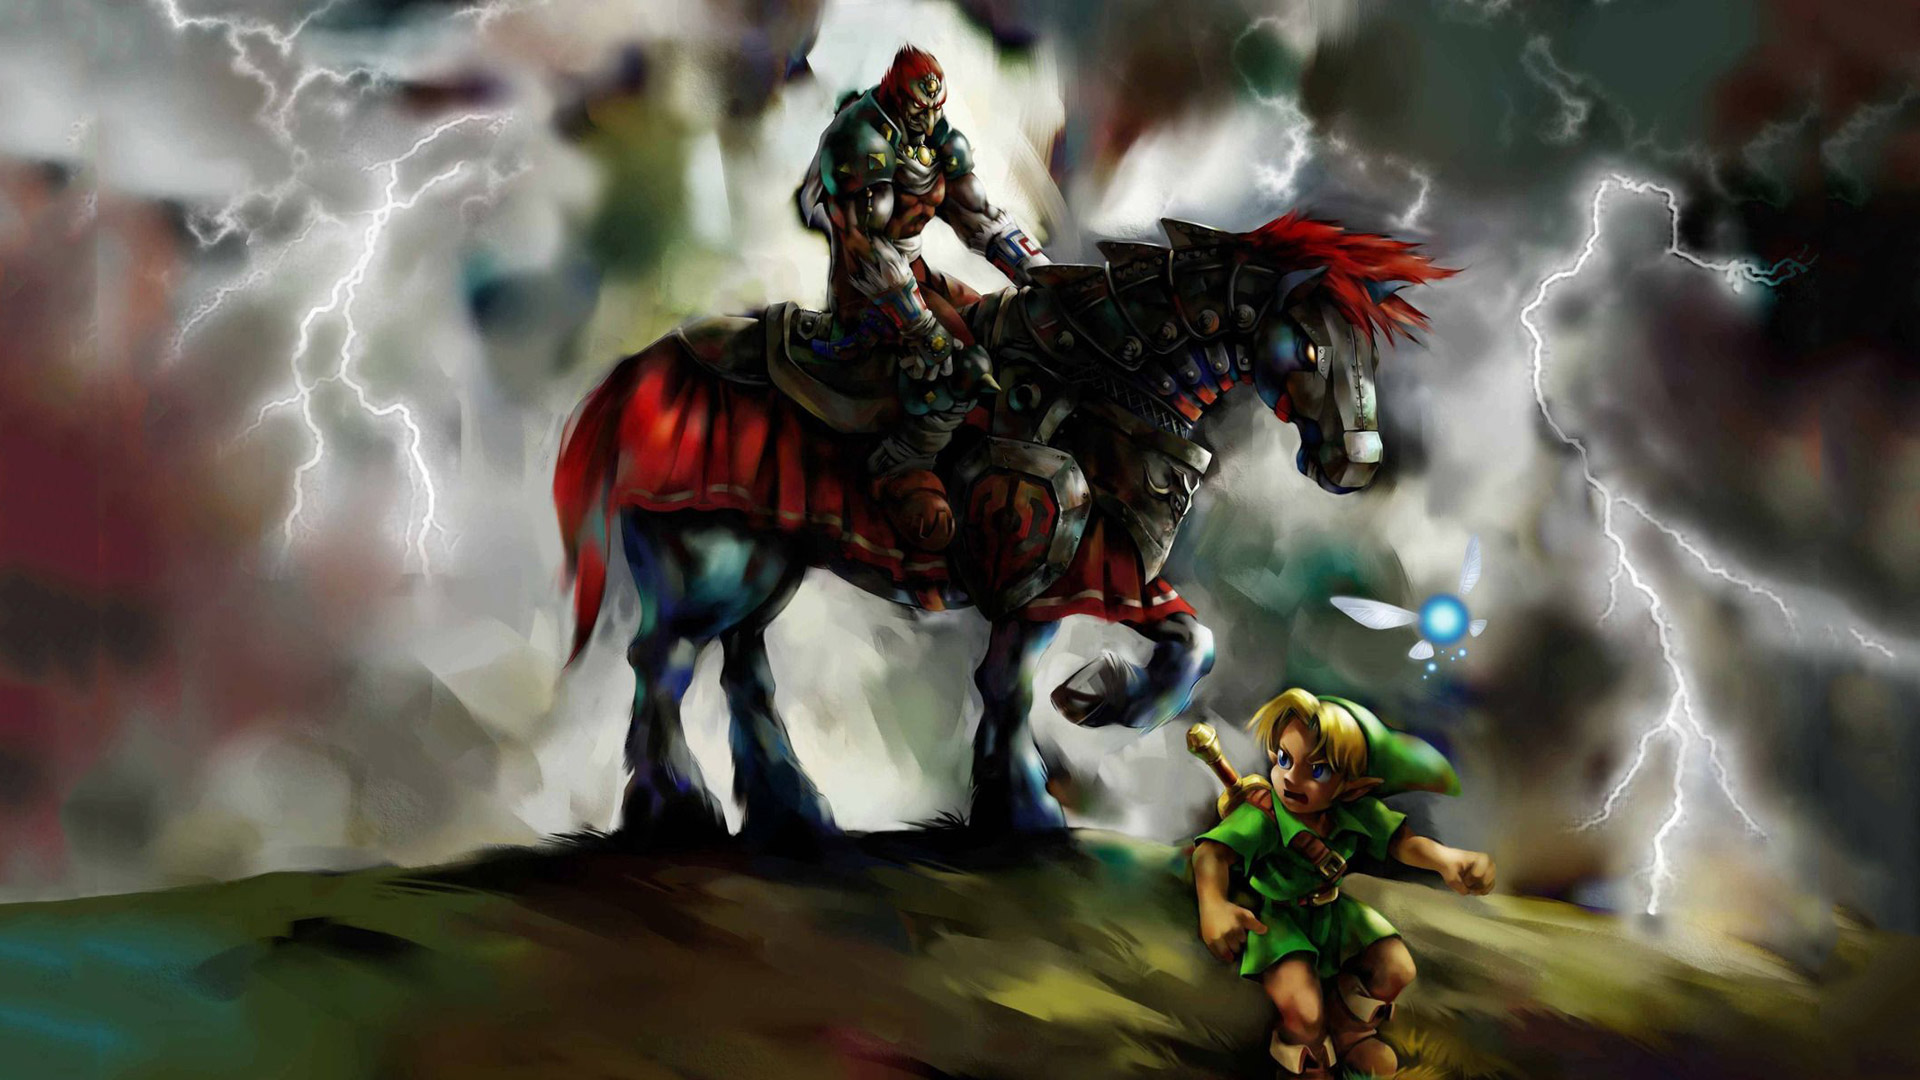 Free The Legend of Zelda: Ocarina of Time Wallpaper in 1920x1080